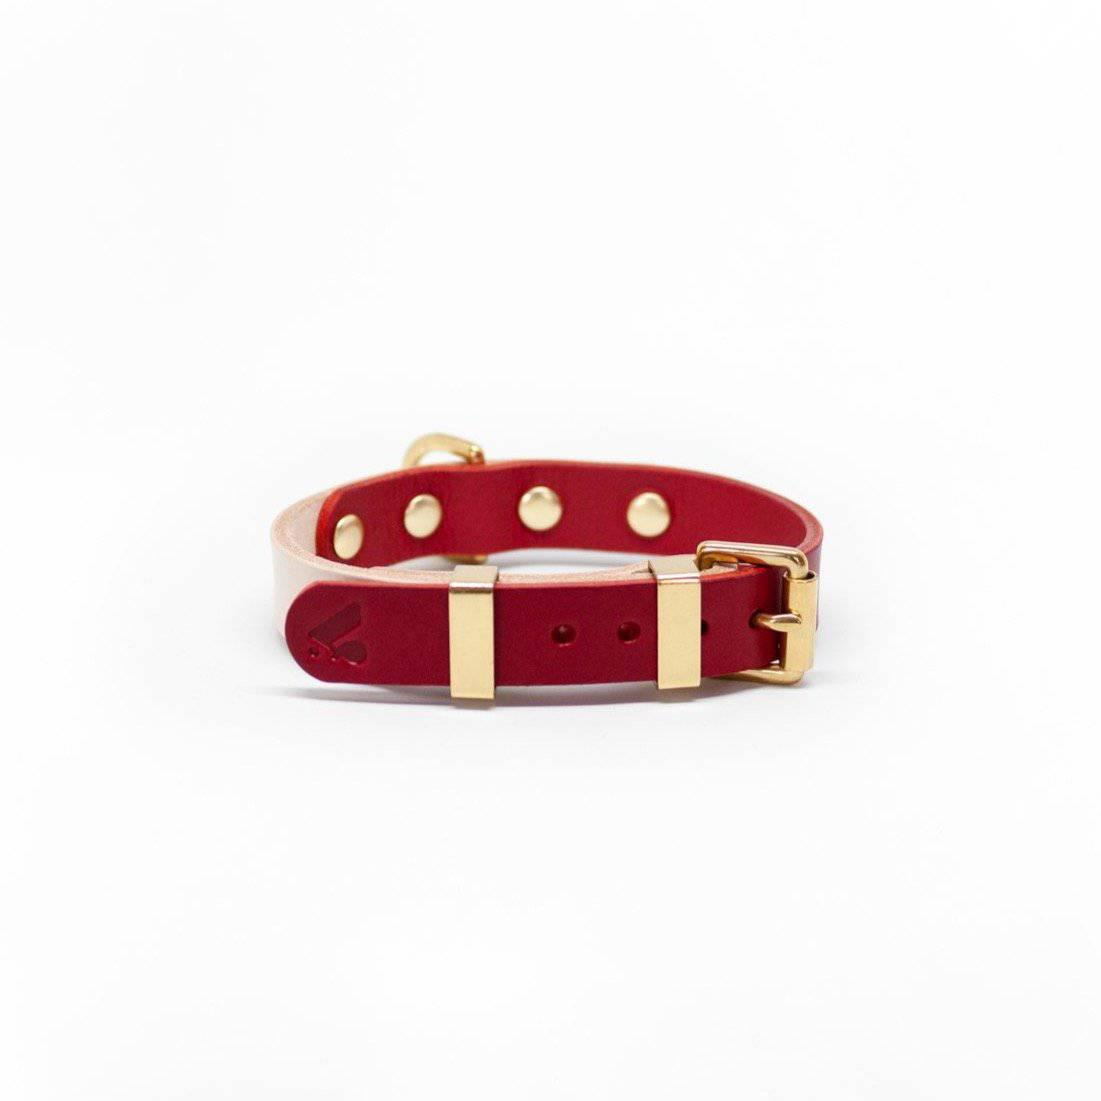 Nude & Ruby Duotone Leather Collar + Brass Hardware - Holler Brighton